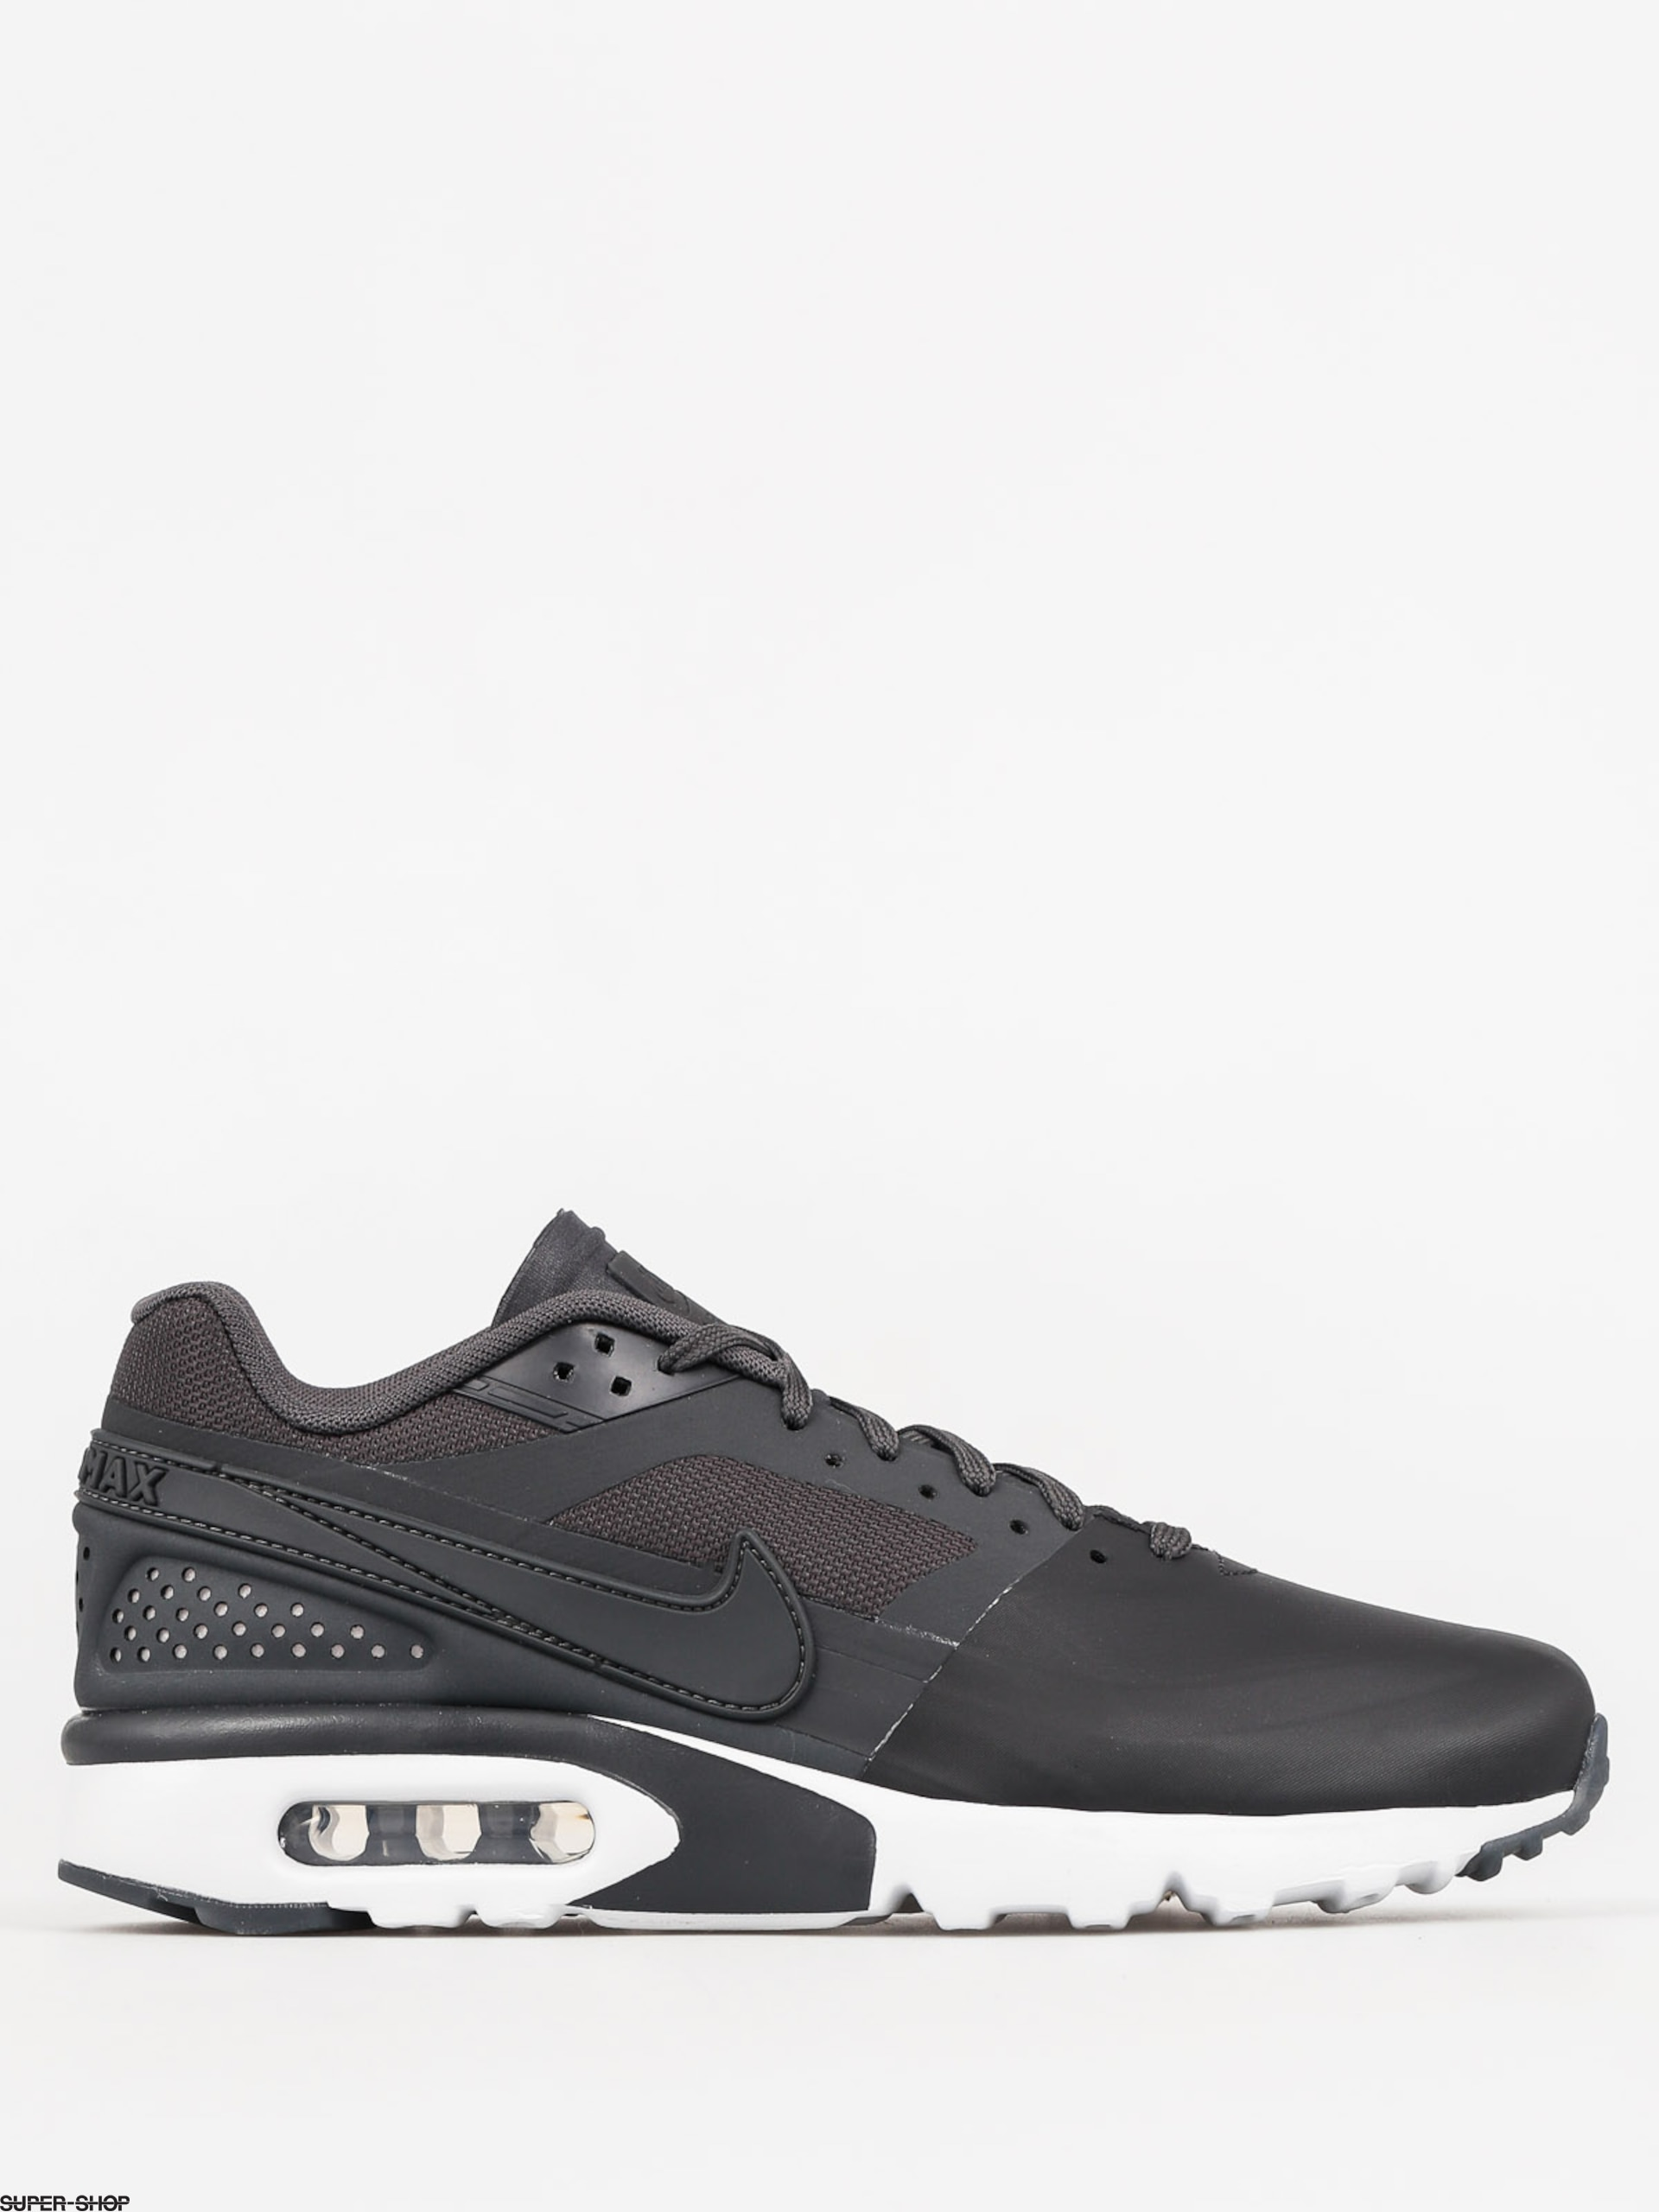 Nike Shoes Air Max Bw Ultra Se (black/anthracite anthracite)